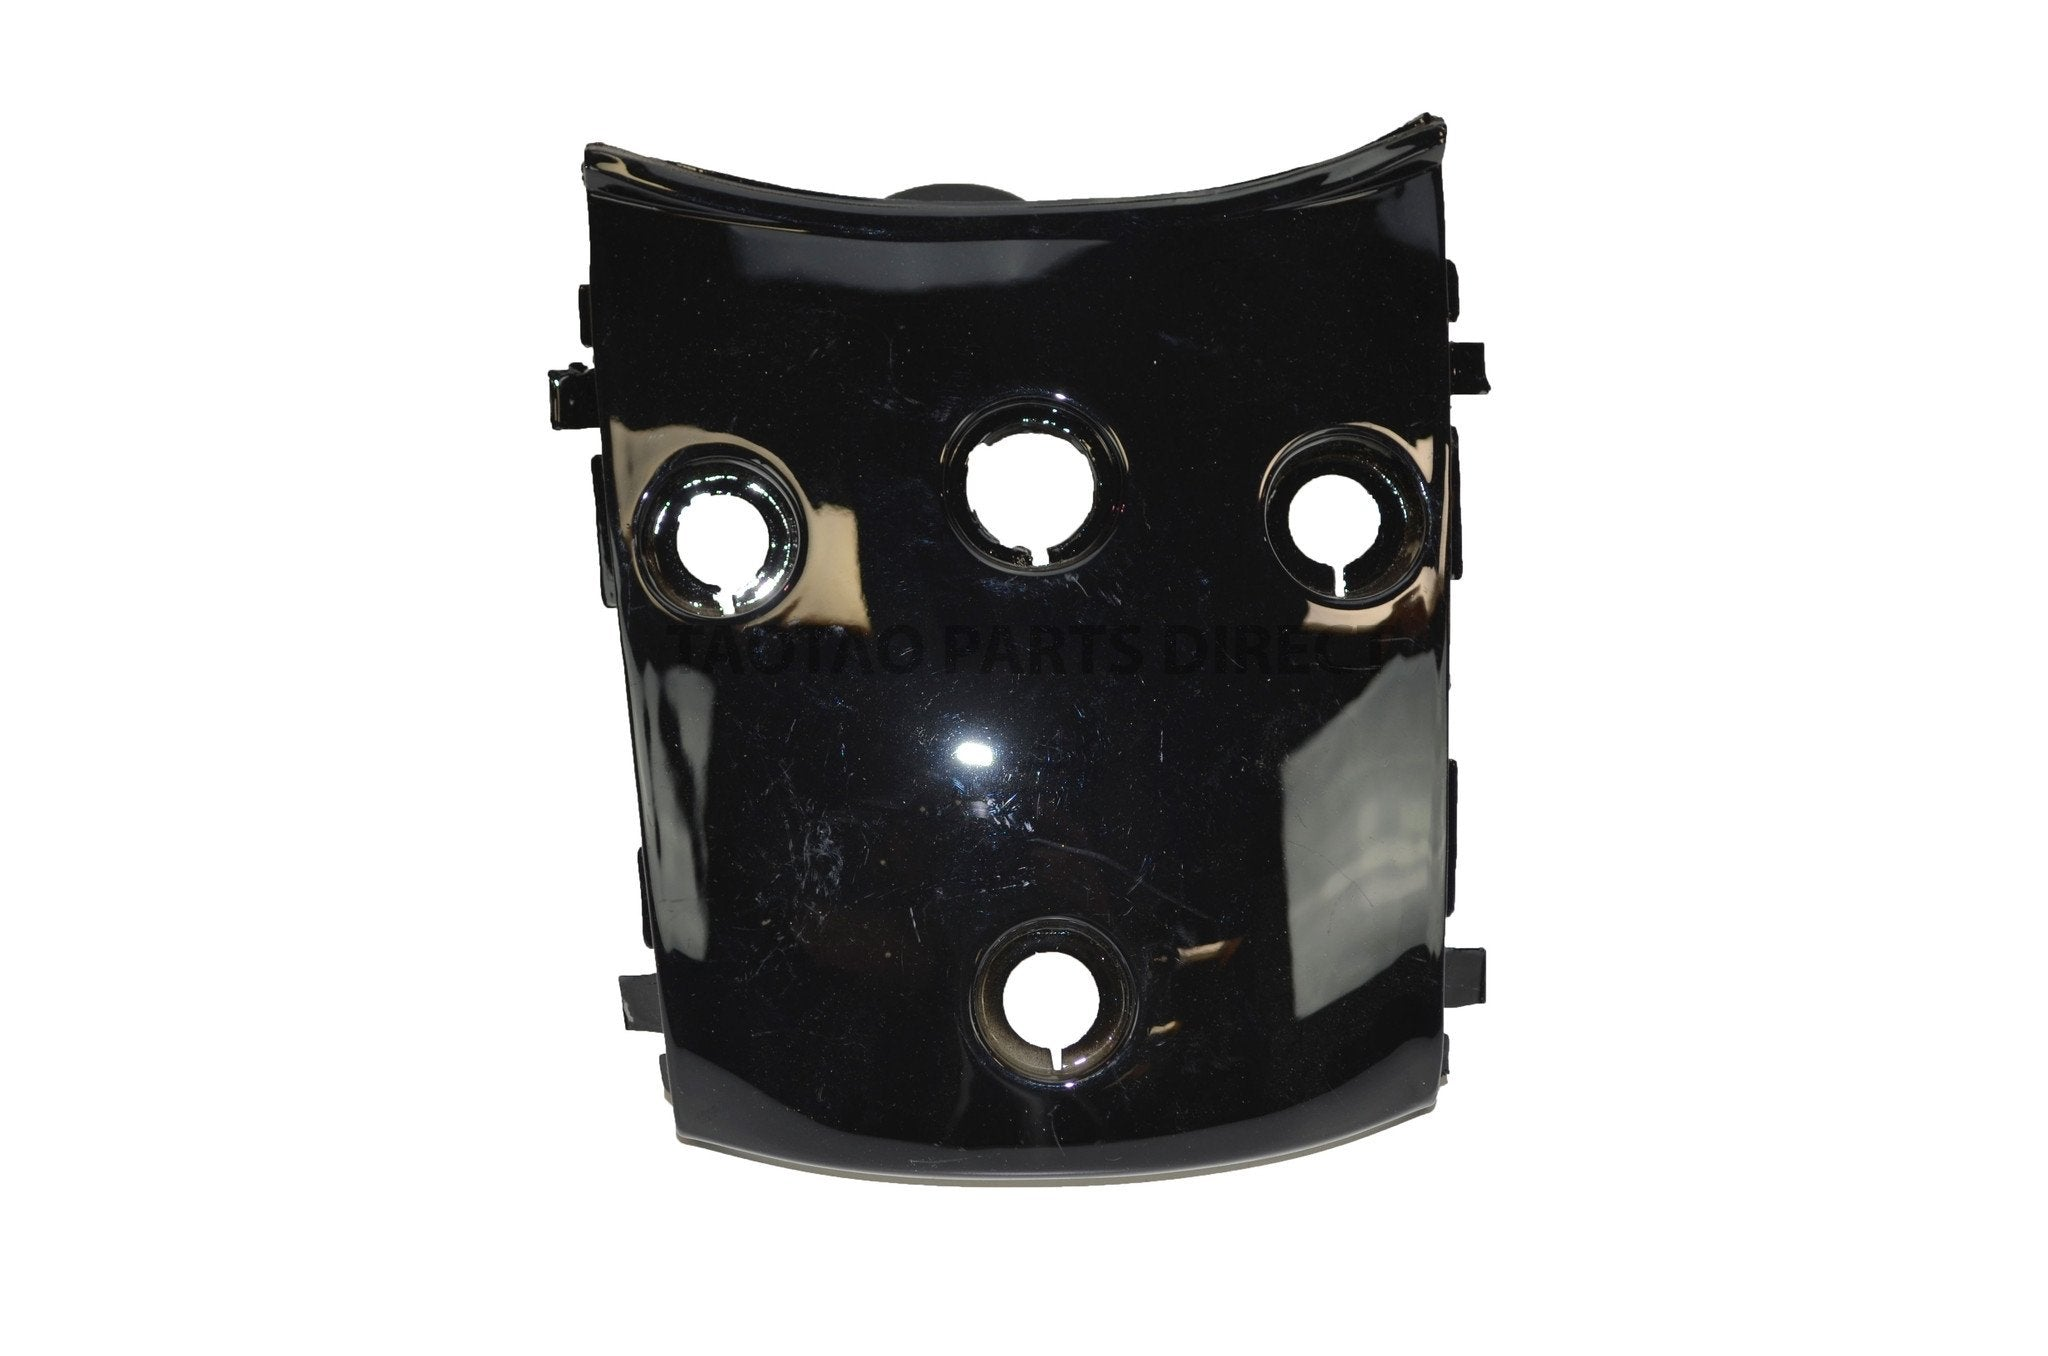 Scooter Parts - CY150B Rear Center Panel